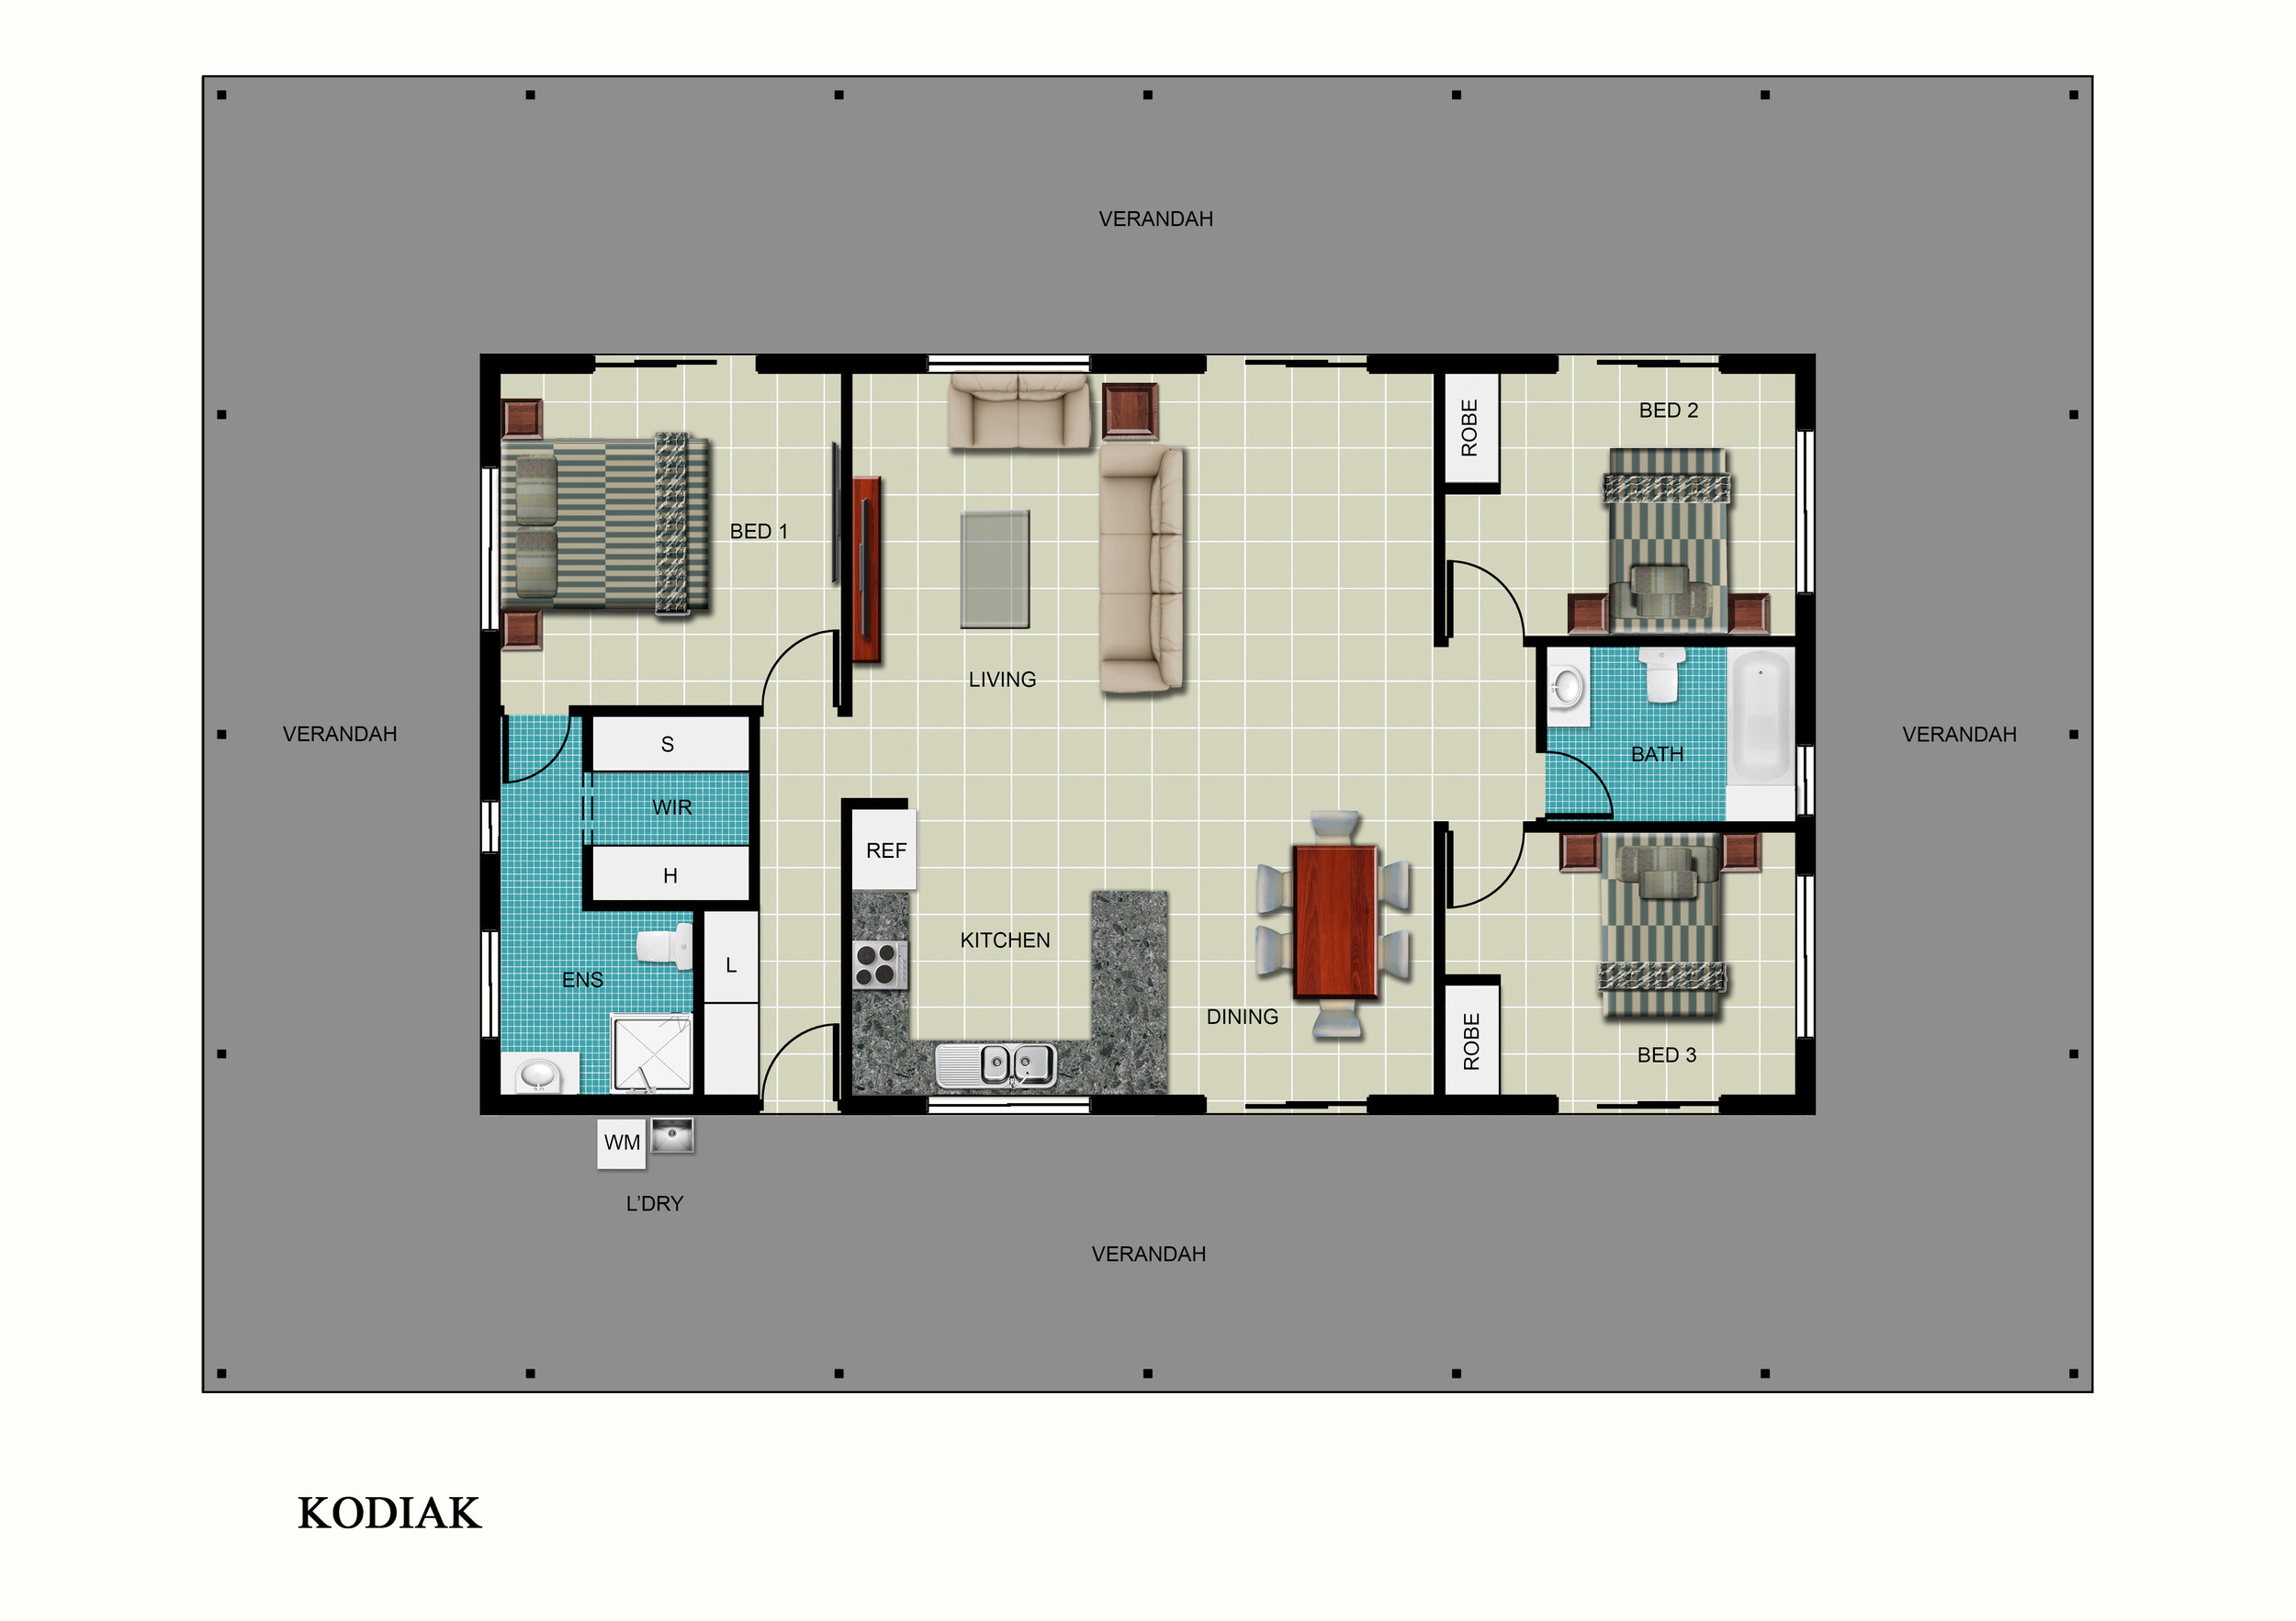 Kodiak Floor Plan